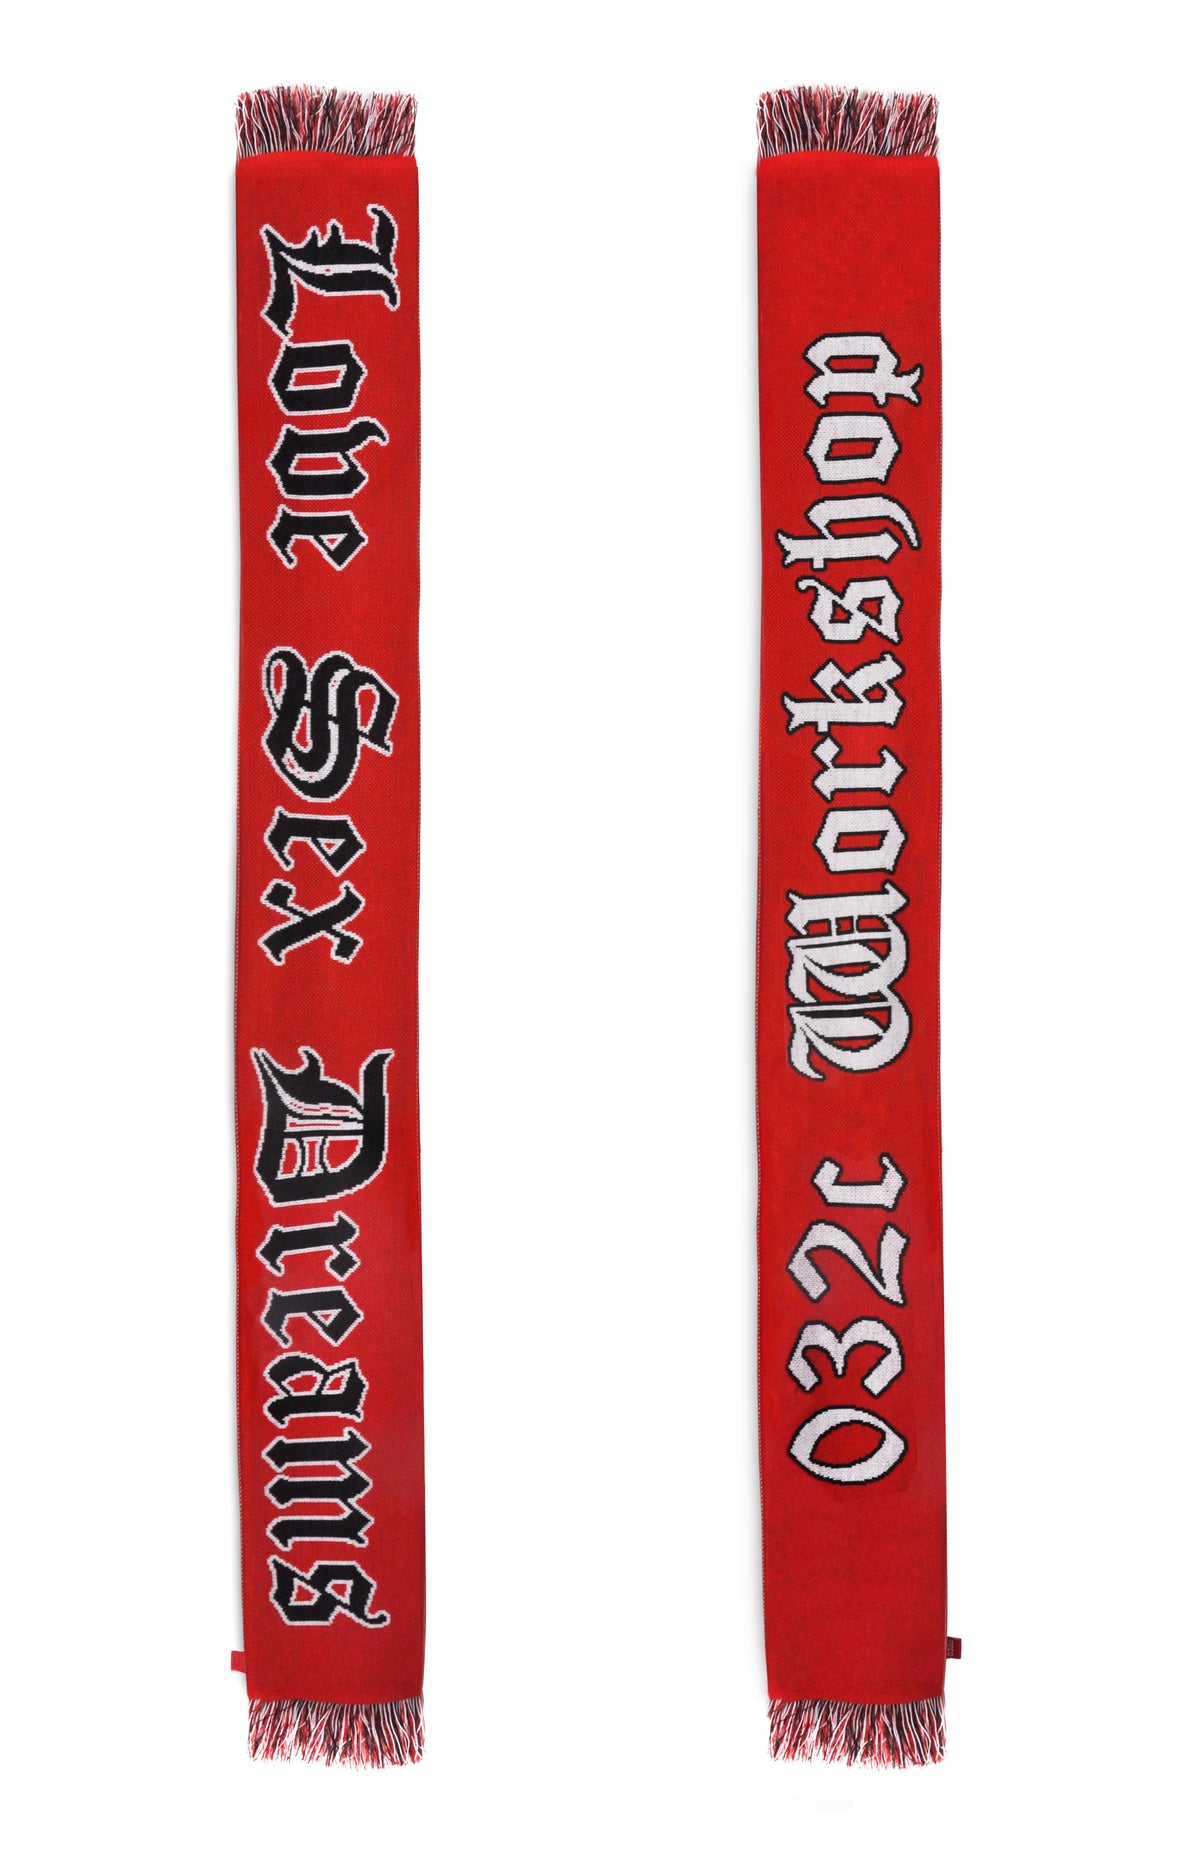 032c Scarf Red - 032c